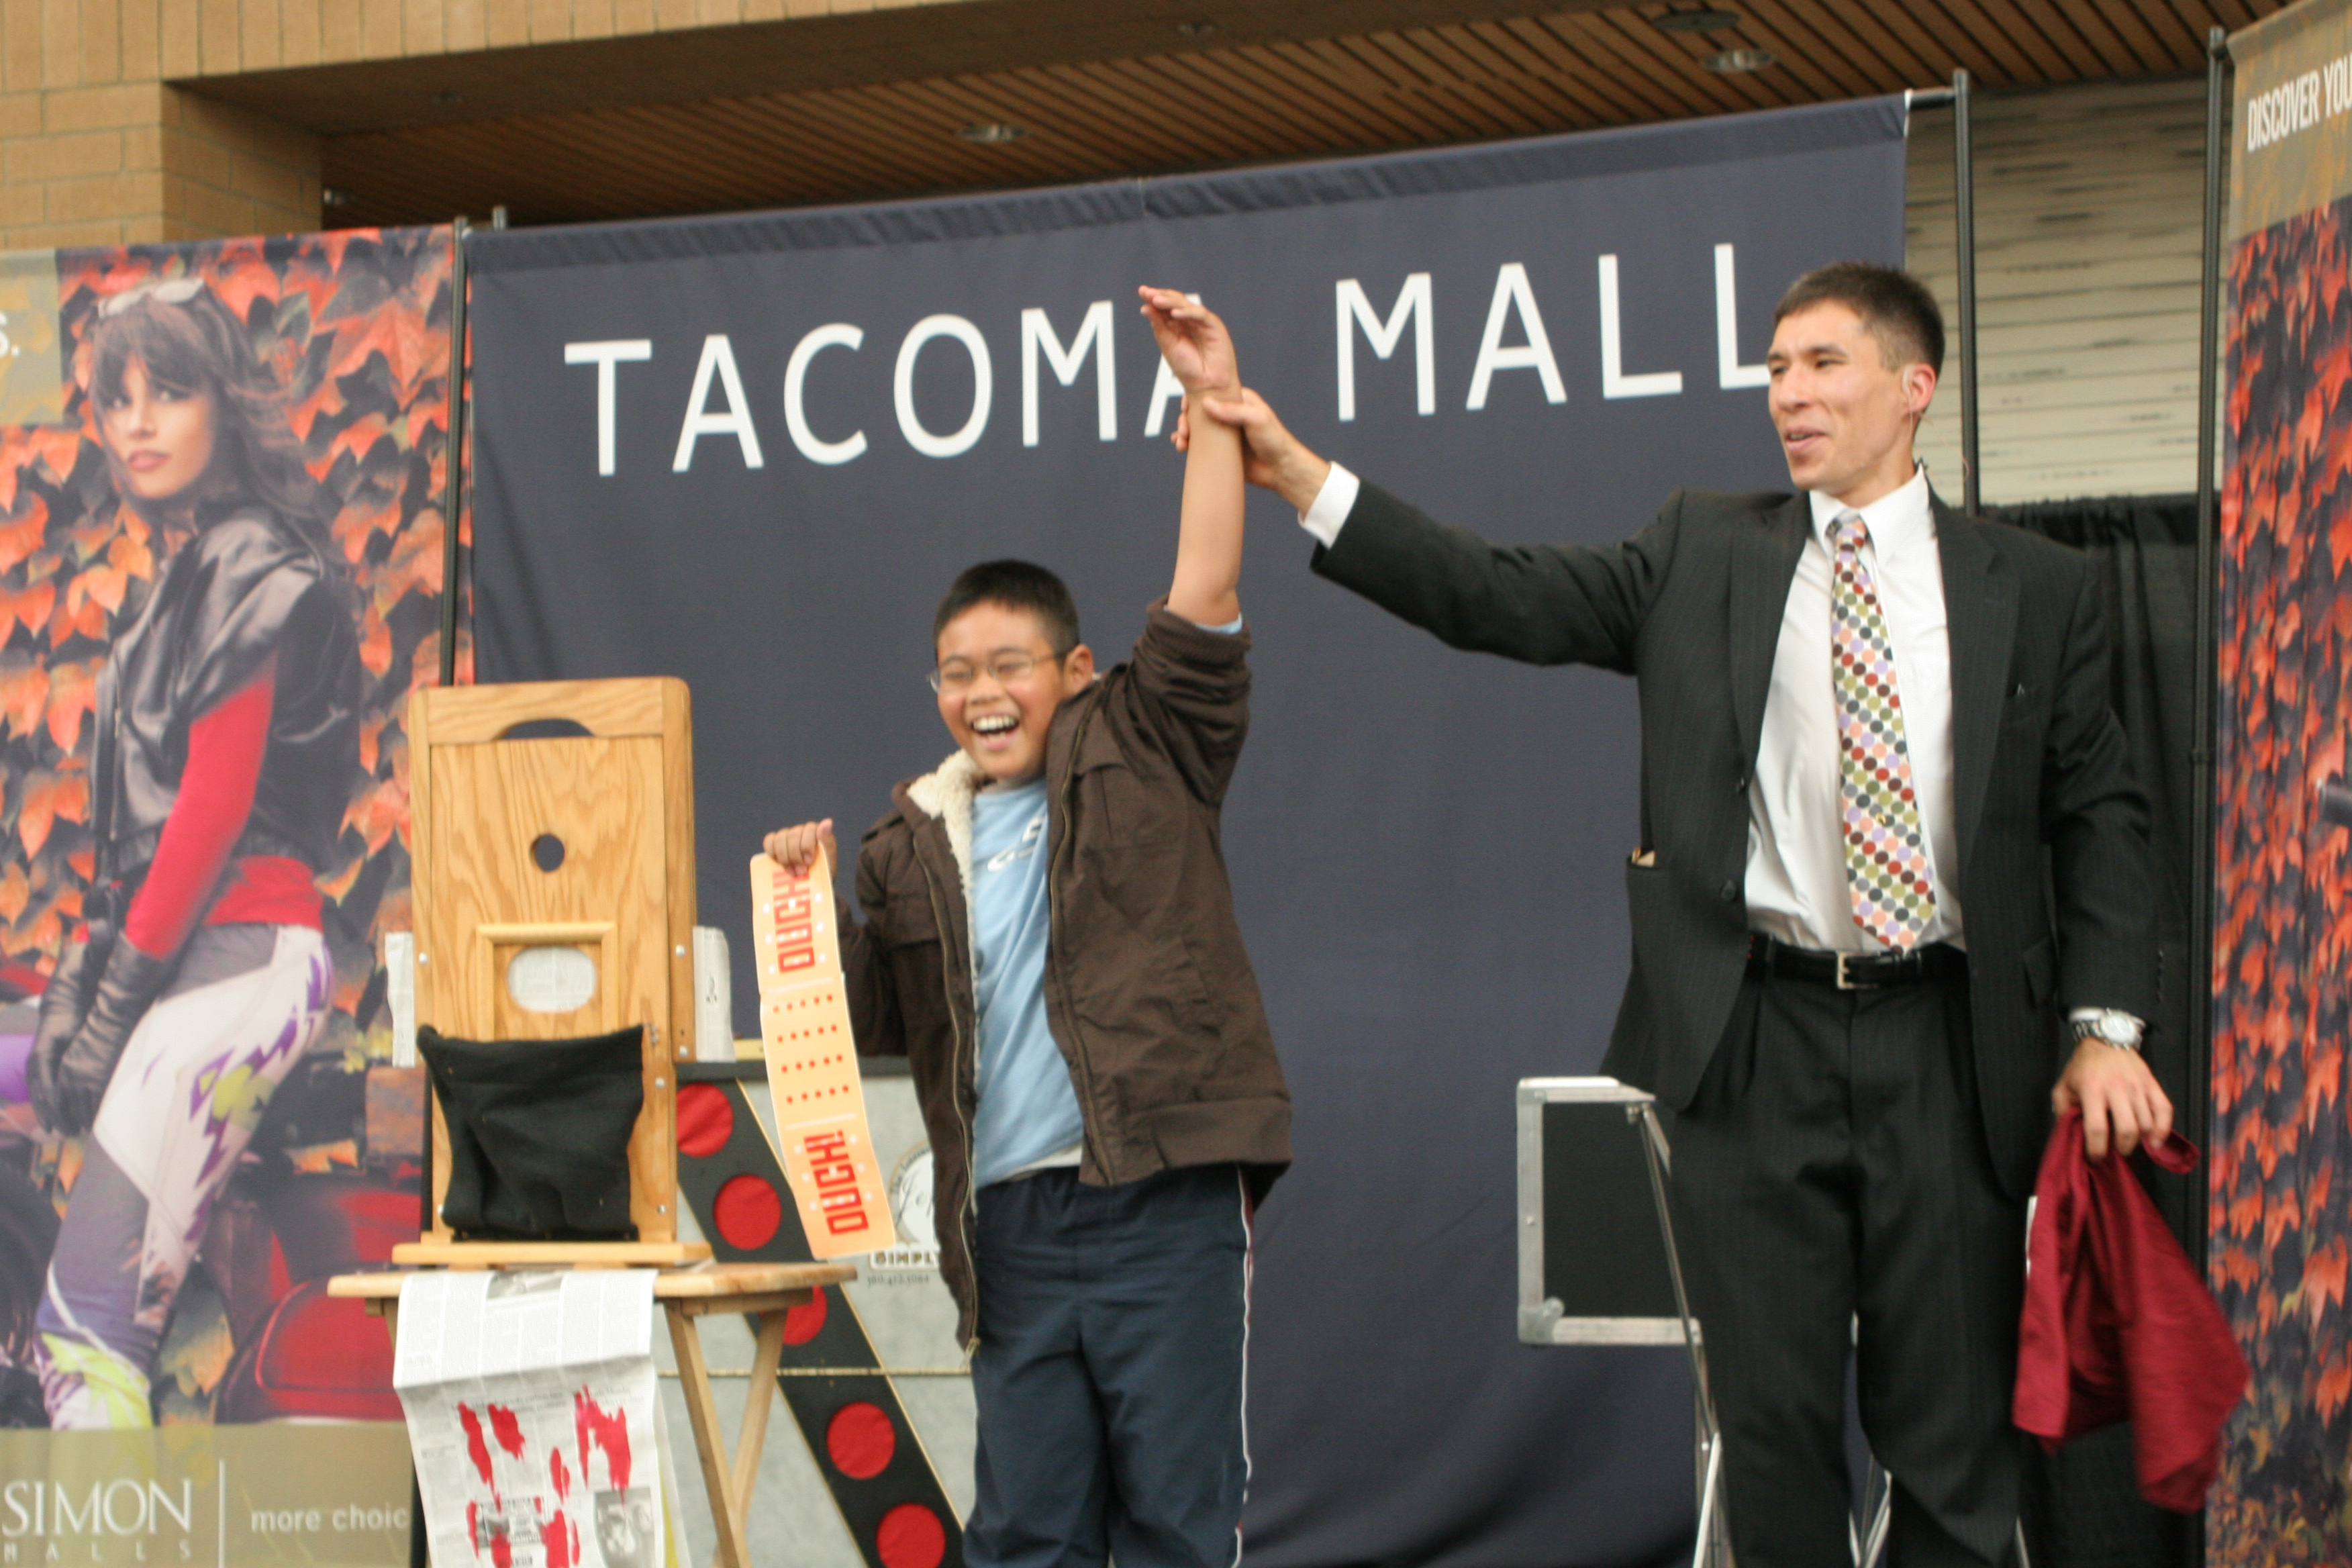 Magician Jeff Evans performs for a special event at the Tacoma Mall